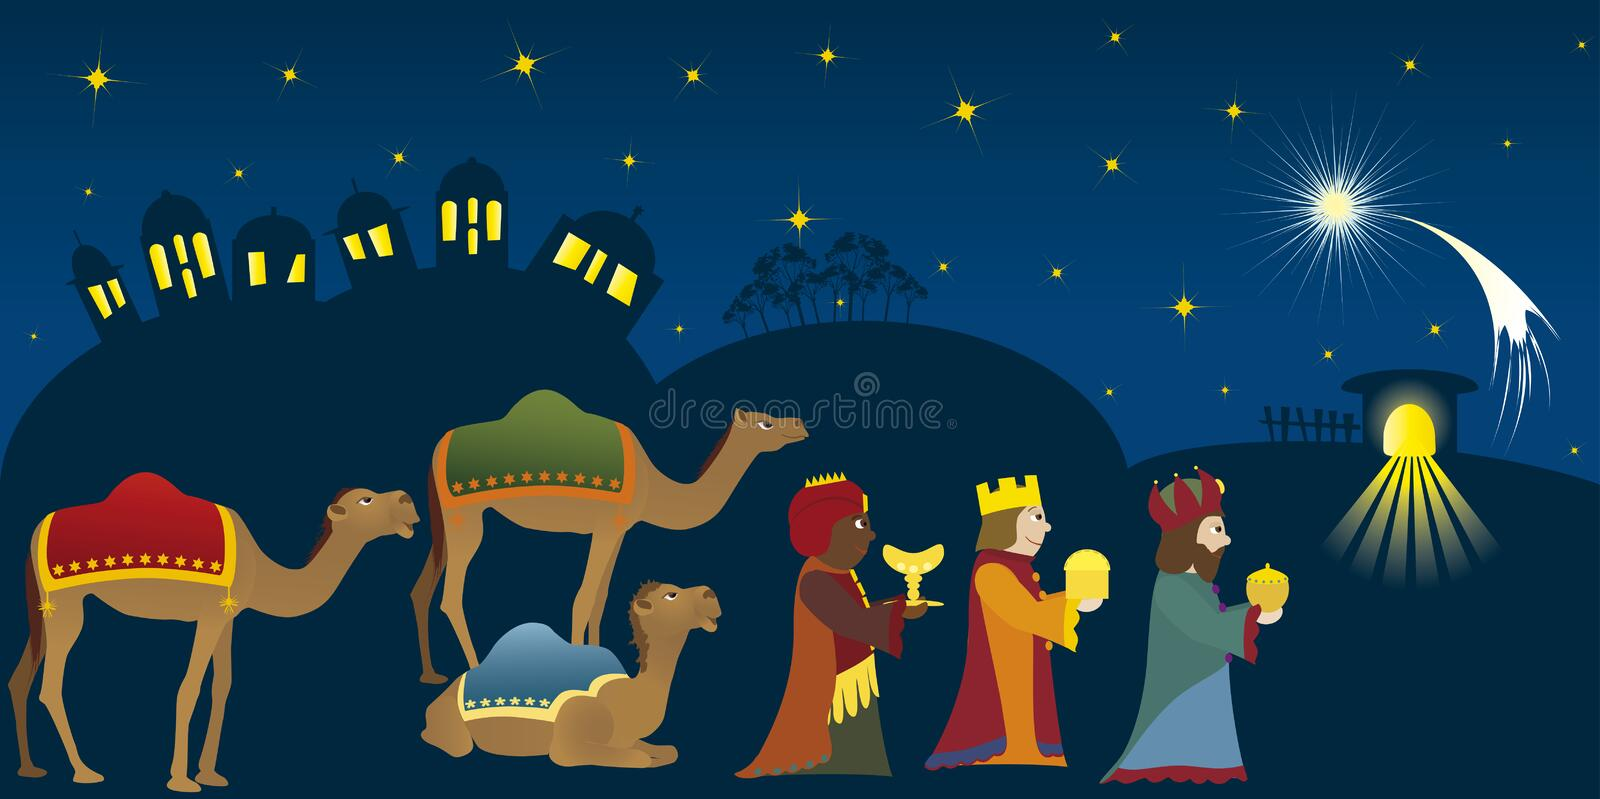 Three Kings in Bethlehem vector illustration